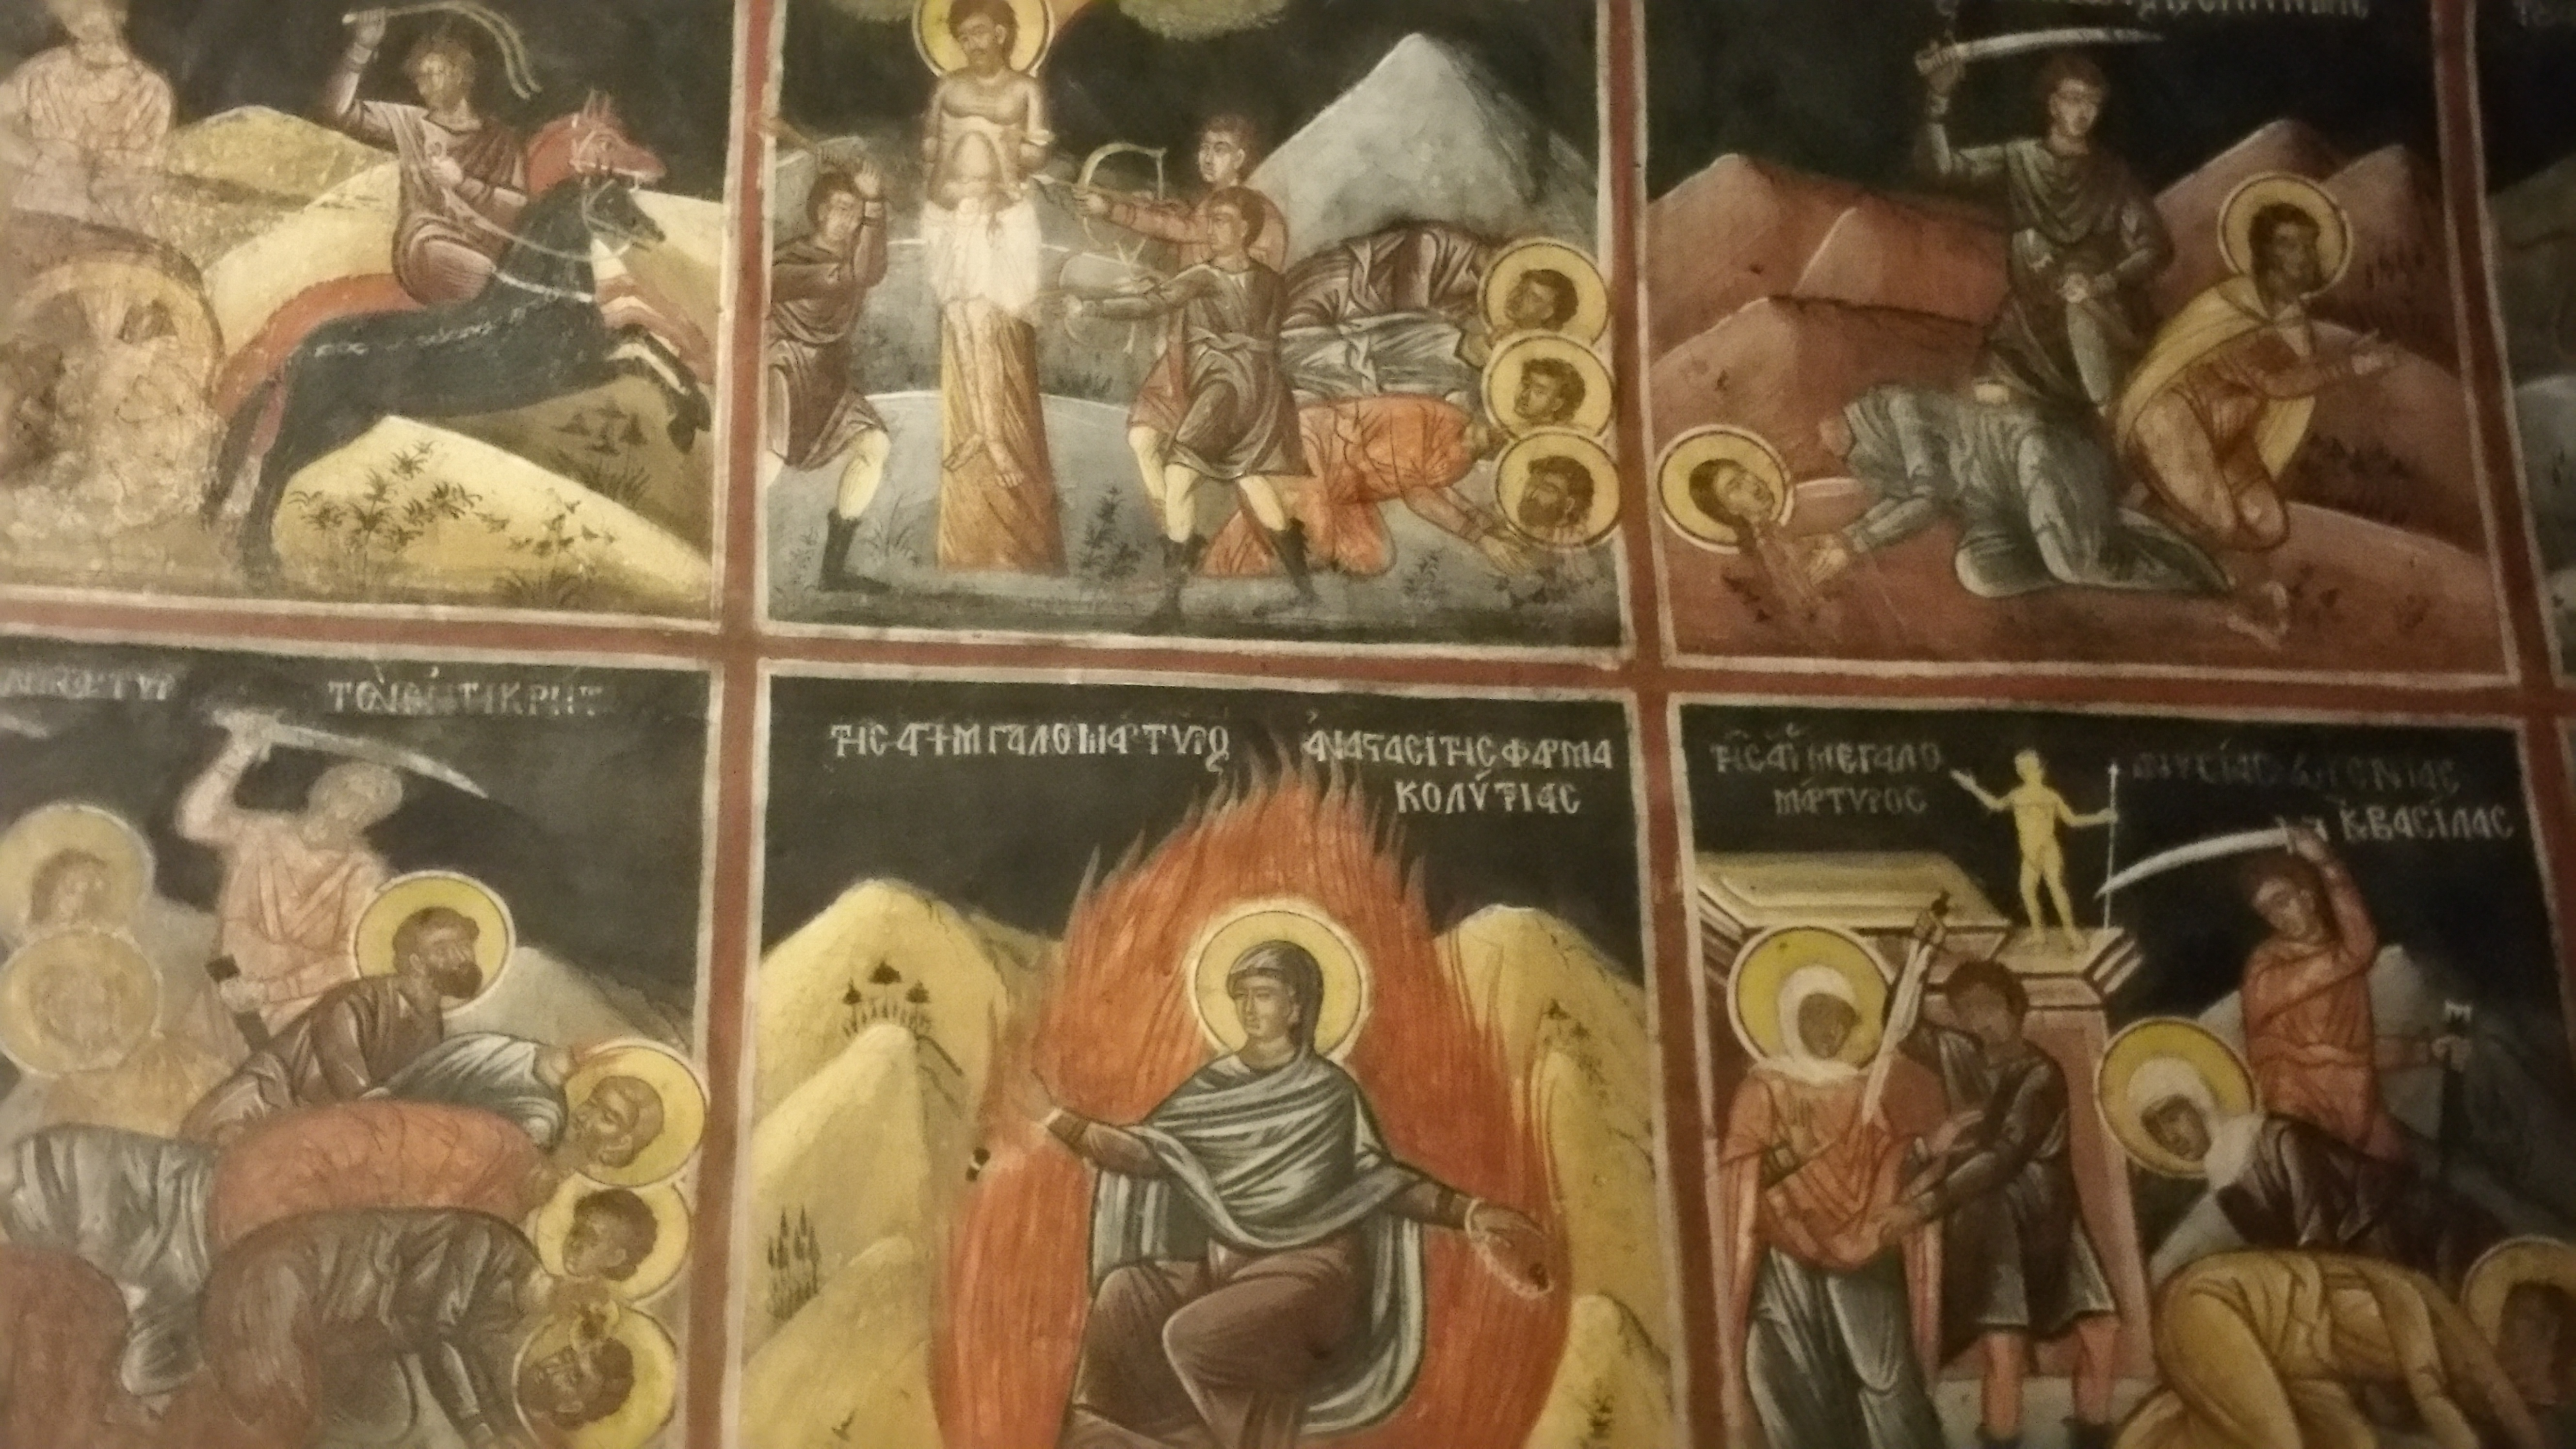 The Martyrdom of from the  monastery of the Annunciation of the Theotokos, Penteli